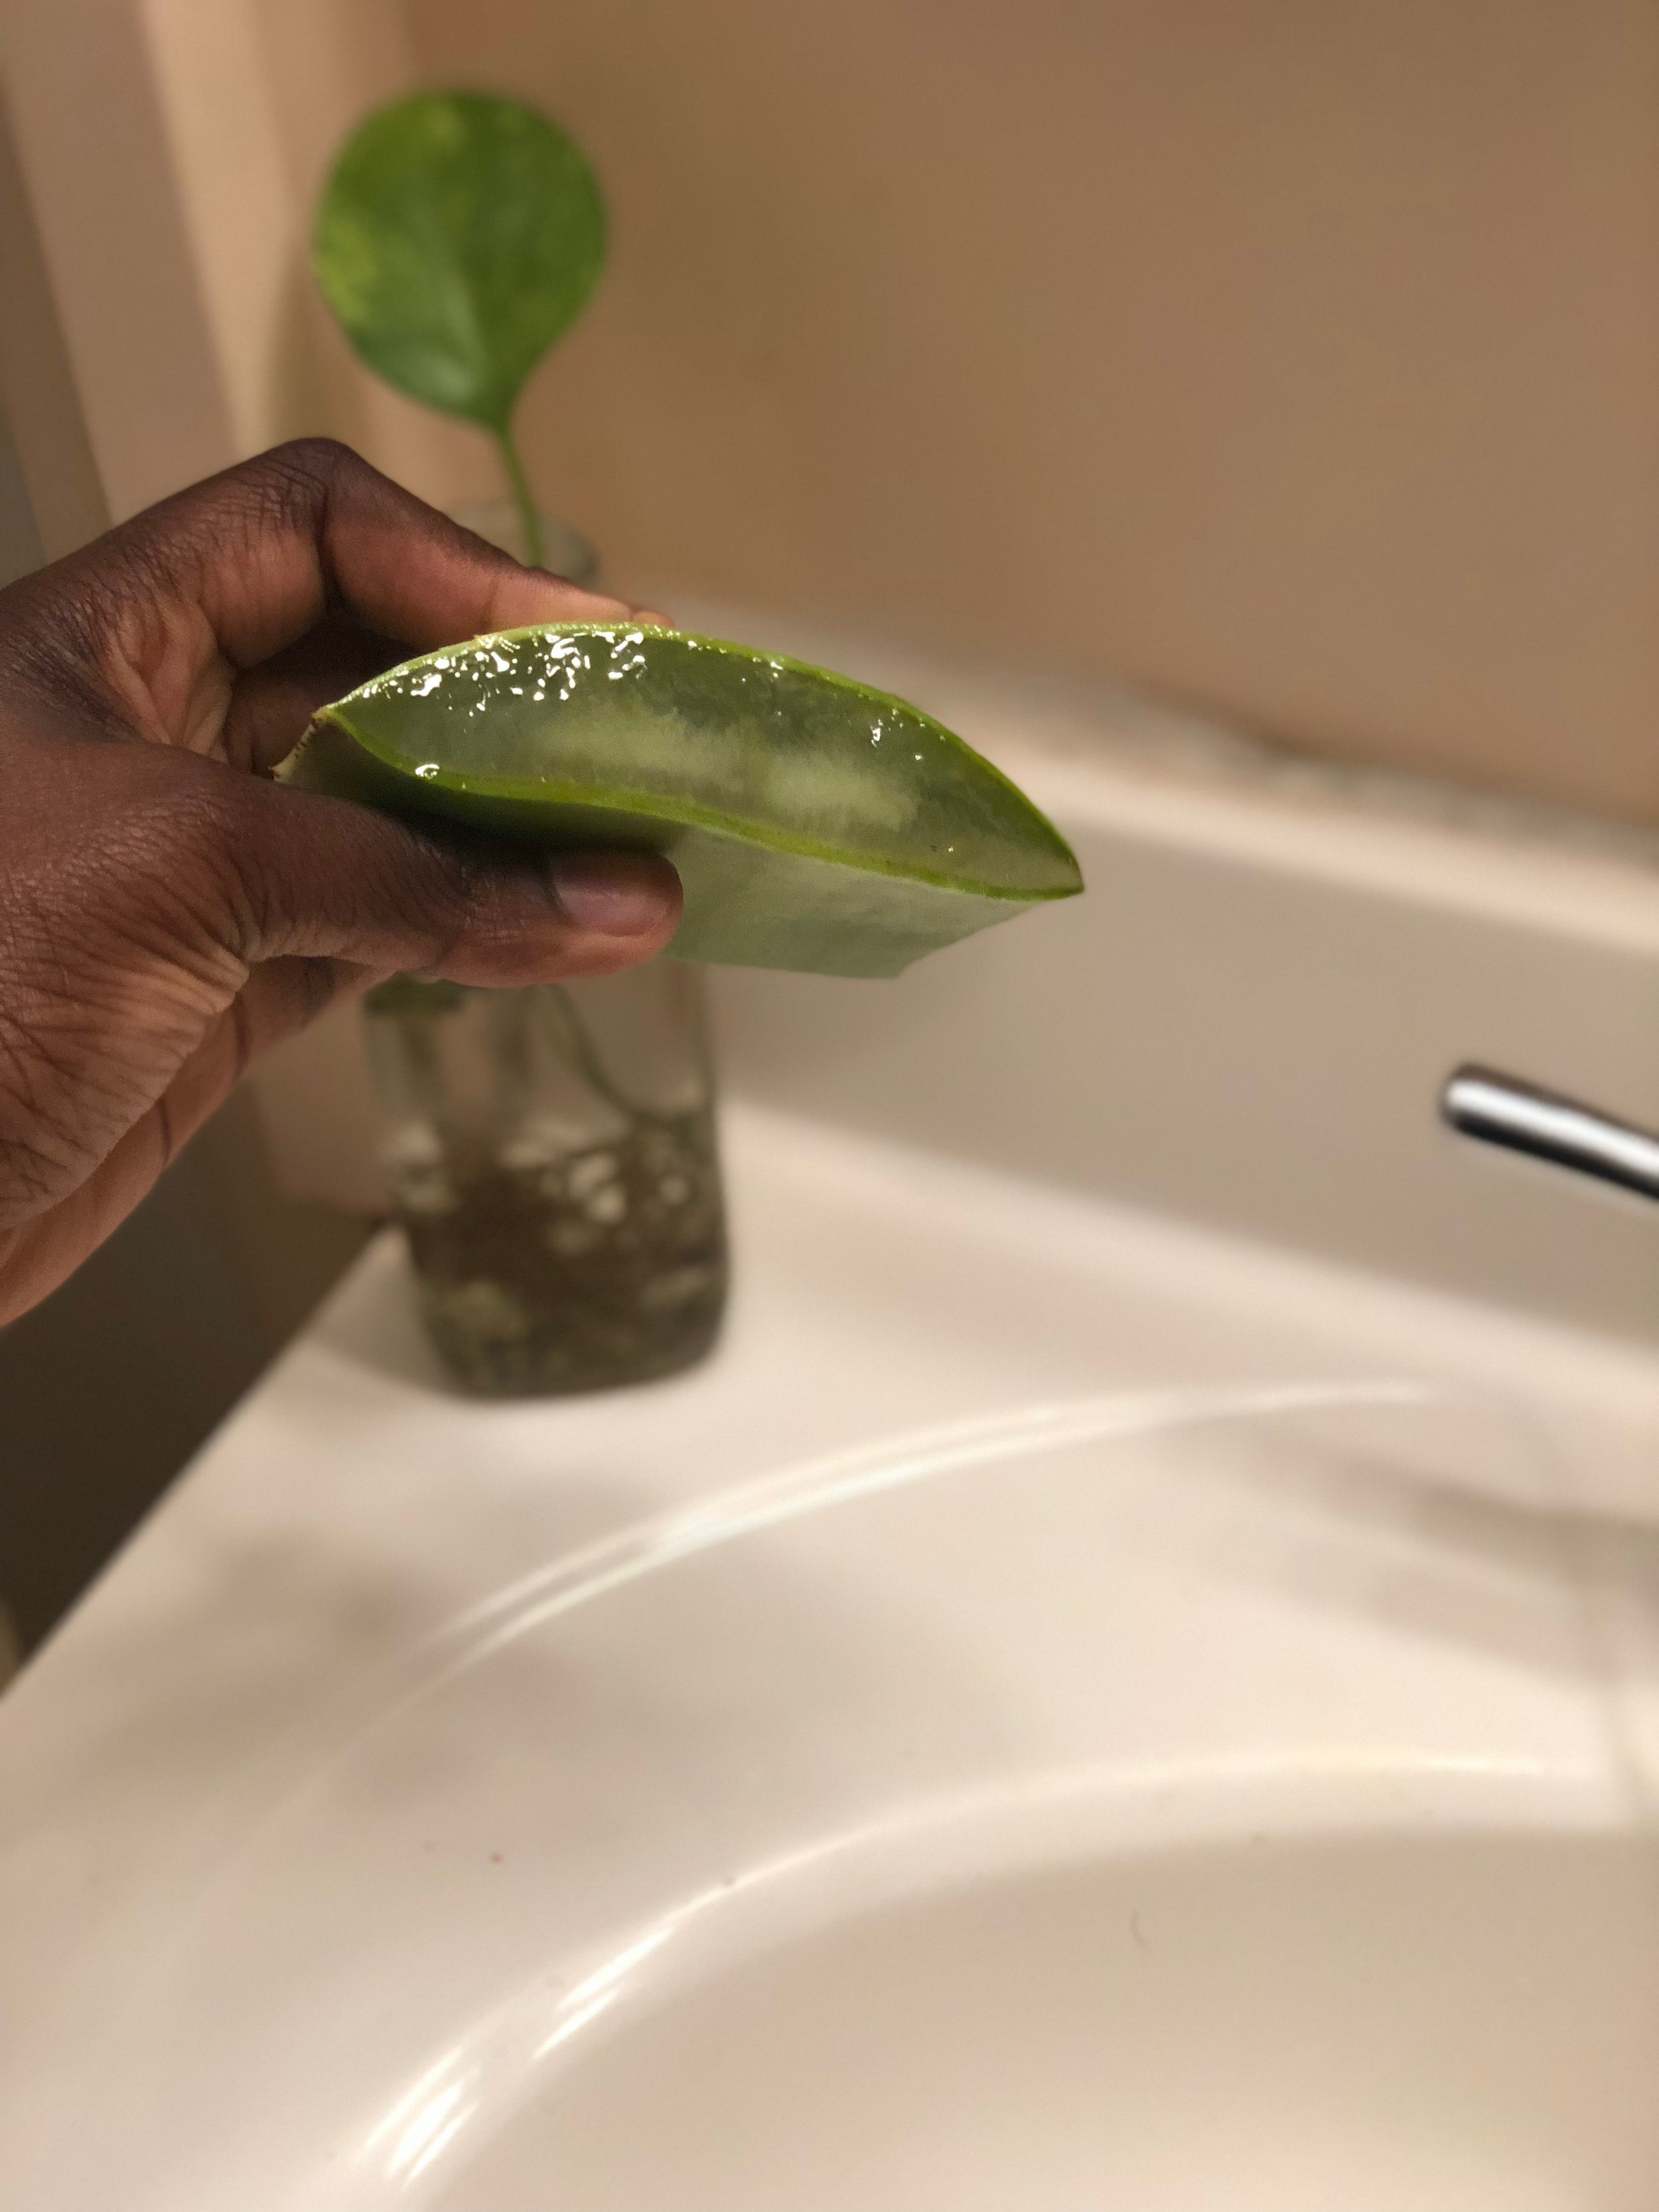 aloe vera is super interesting and has hella benefits! would absolutely recommend using on your skin, hair, your life, etc.